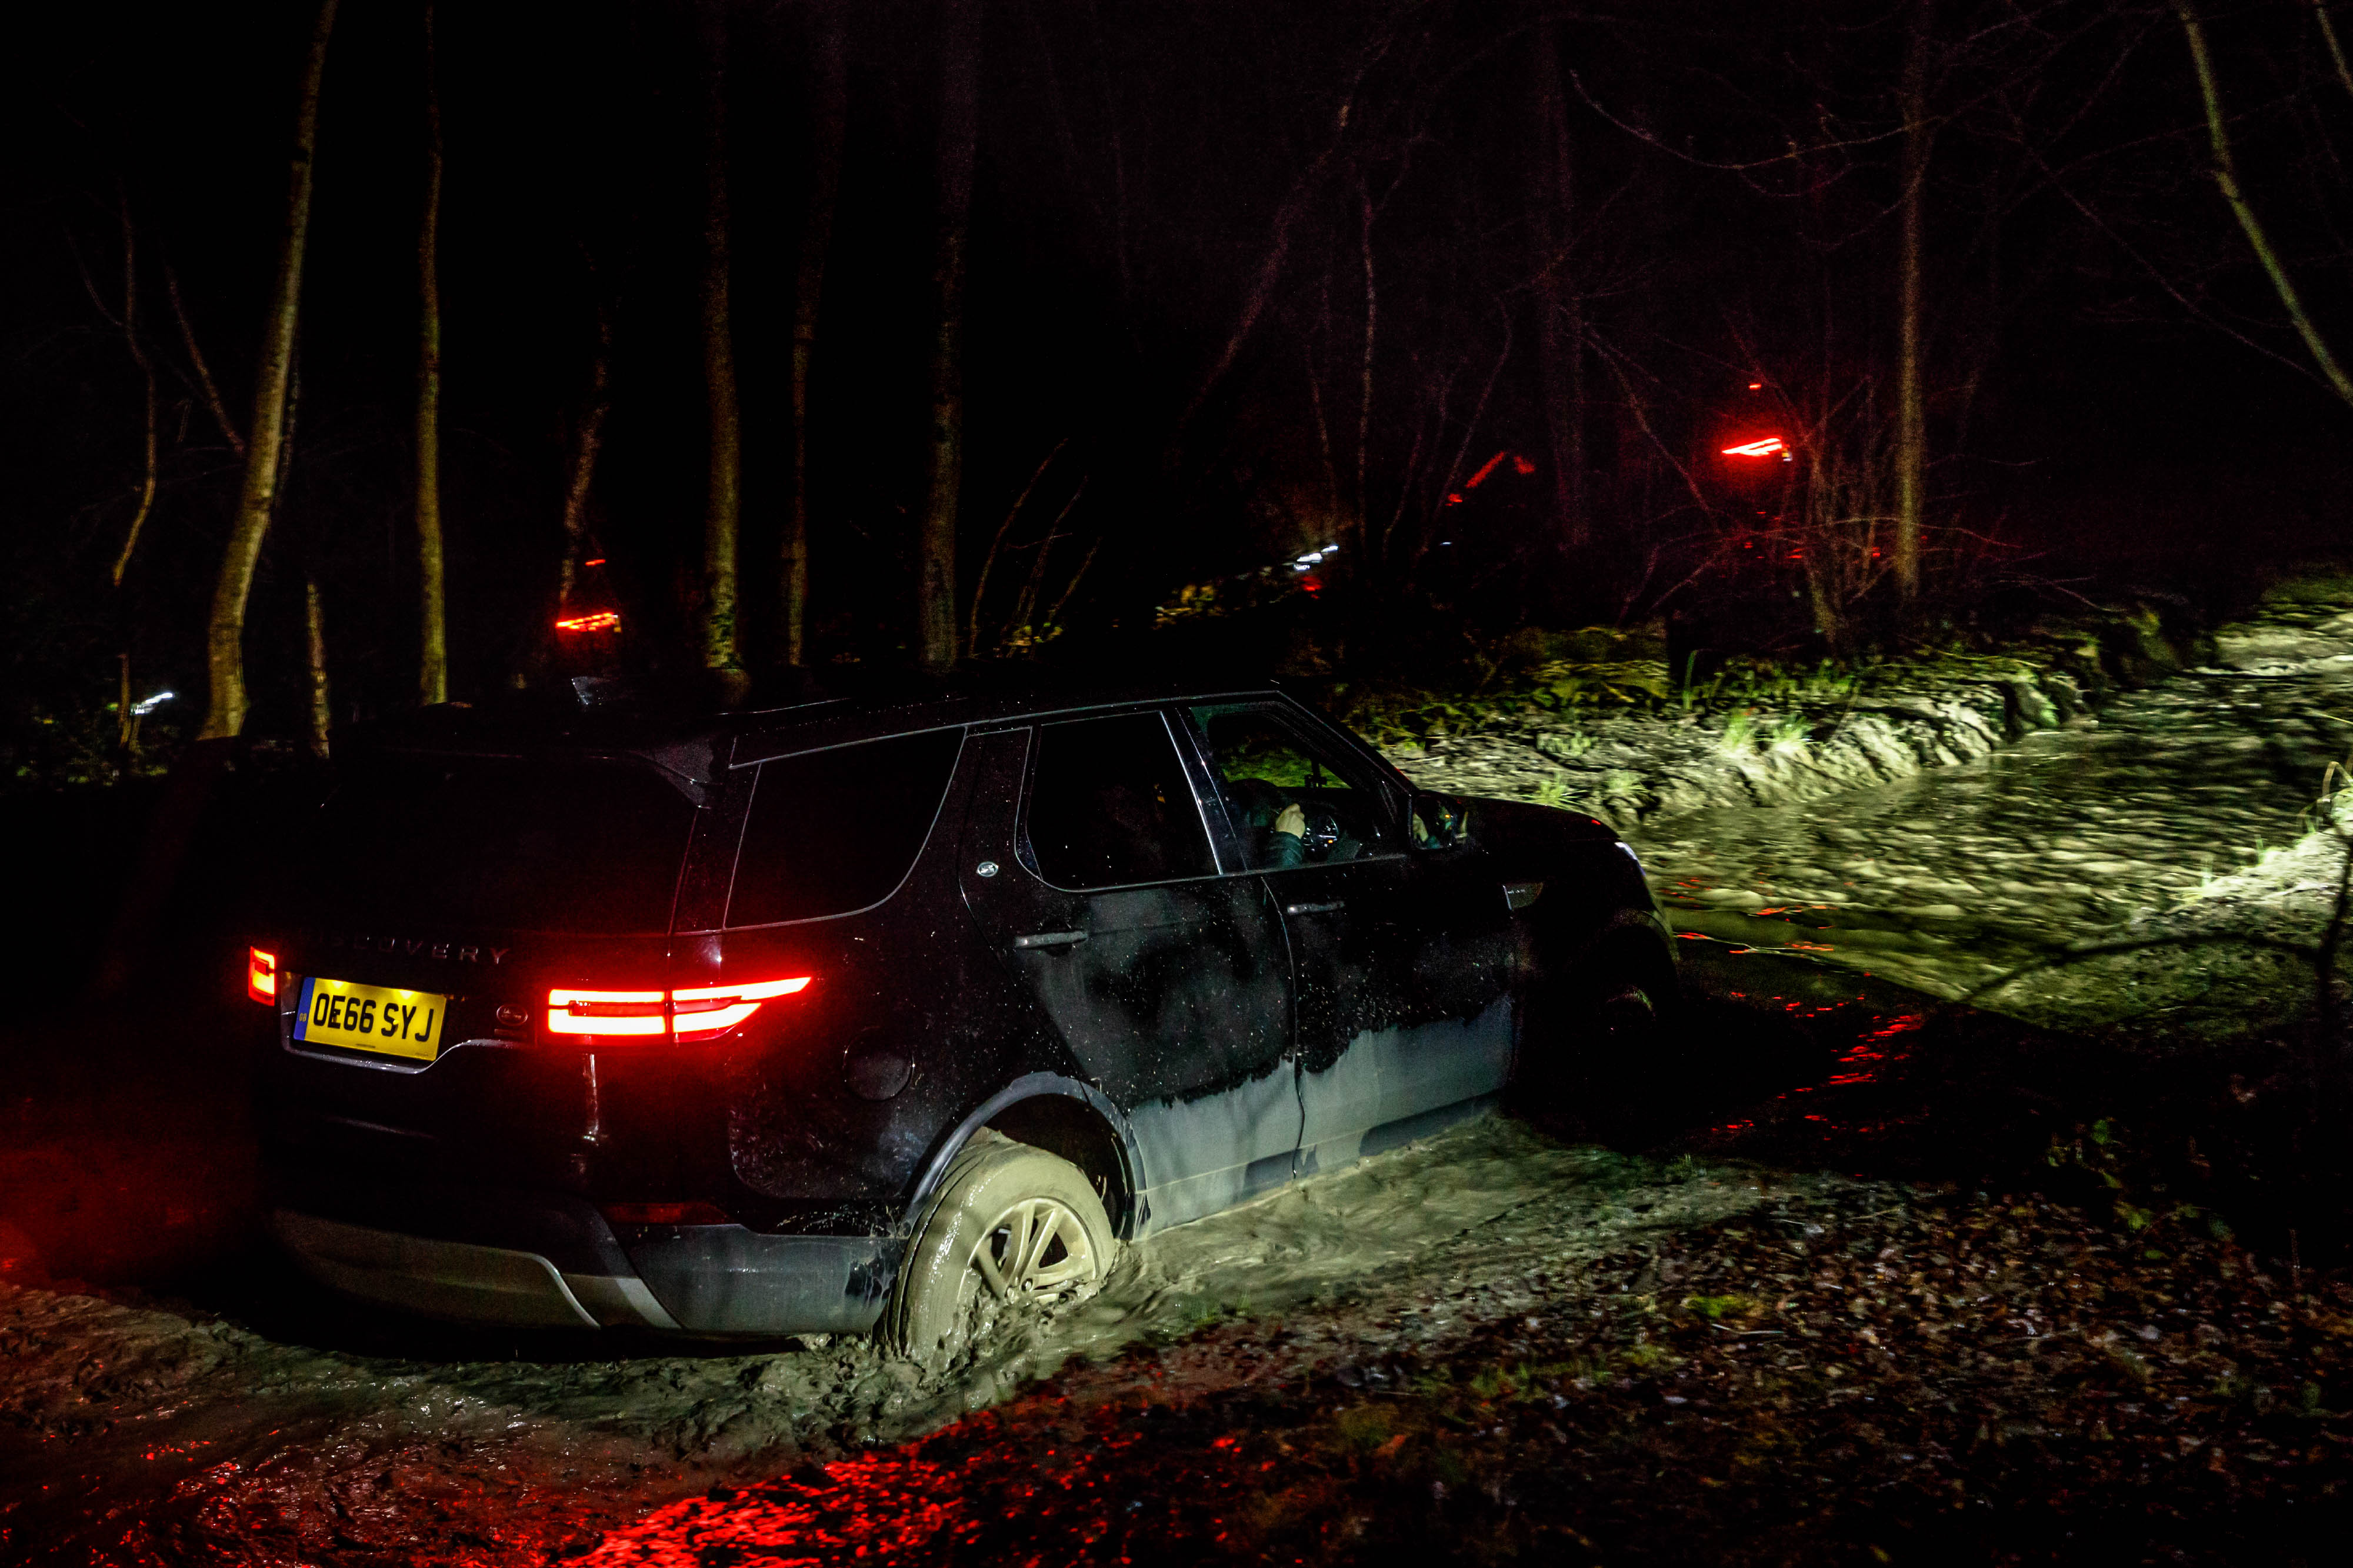 2017 Land Rover Discovery night time rear